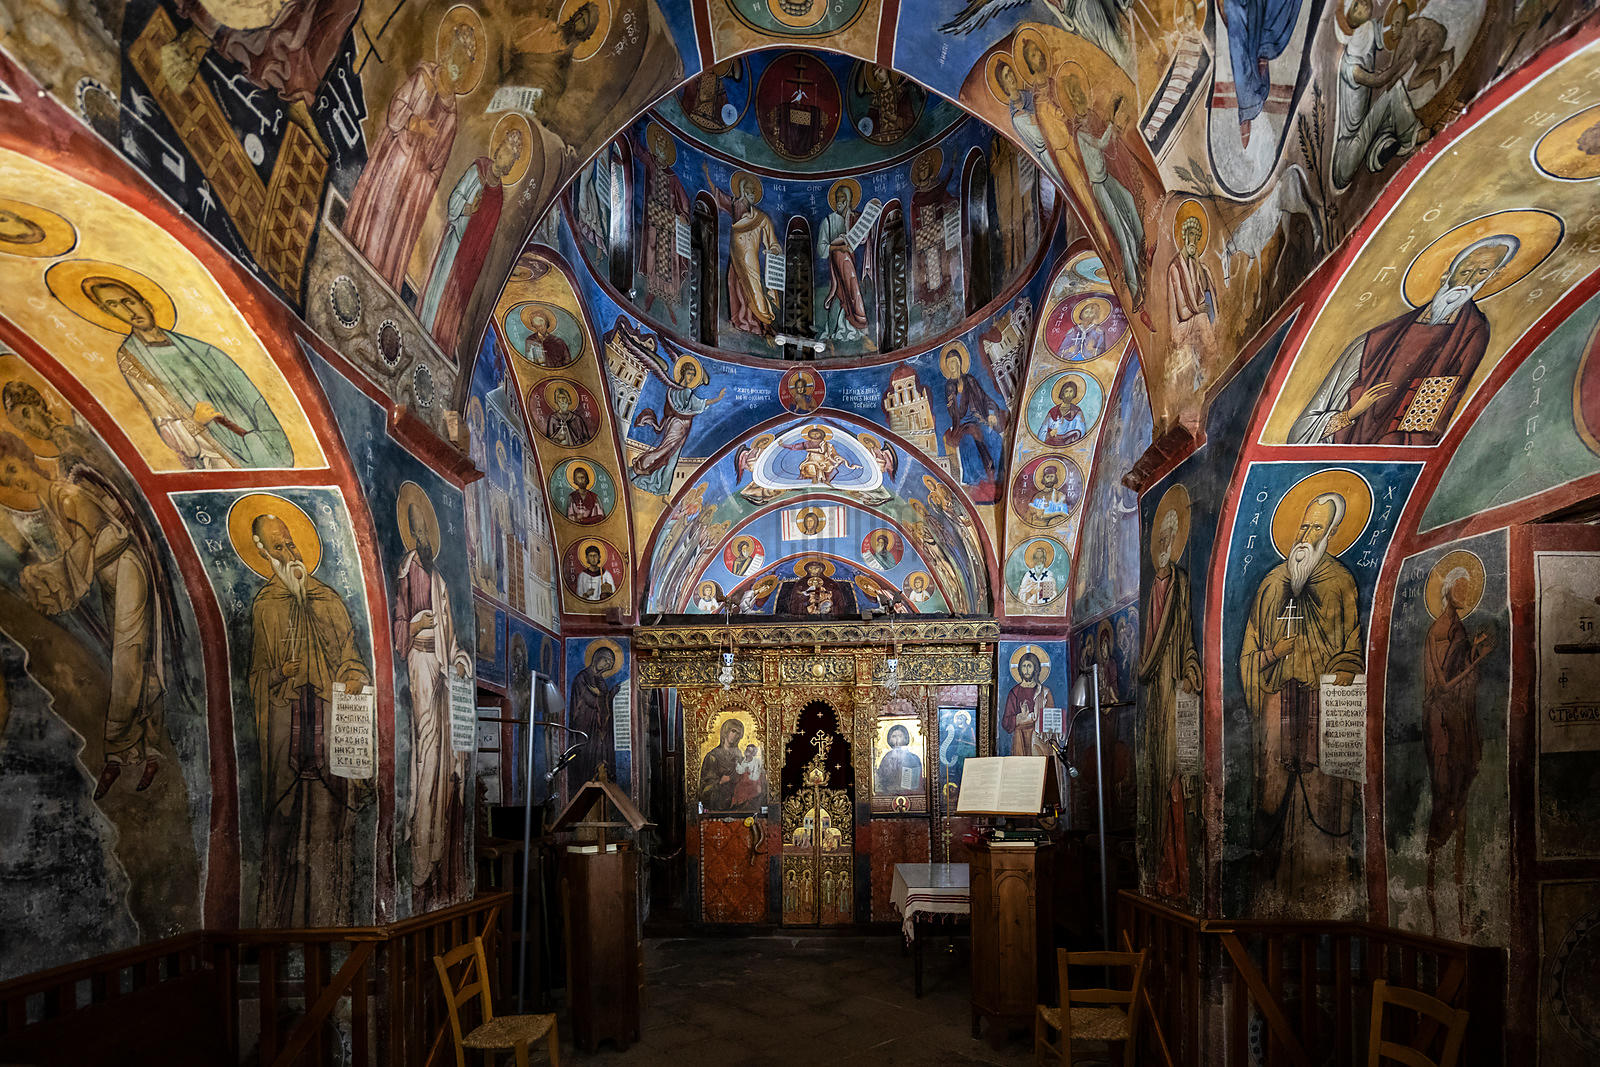 Interior of the Frescoes in Panagia Tou Araka